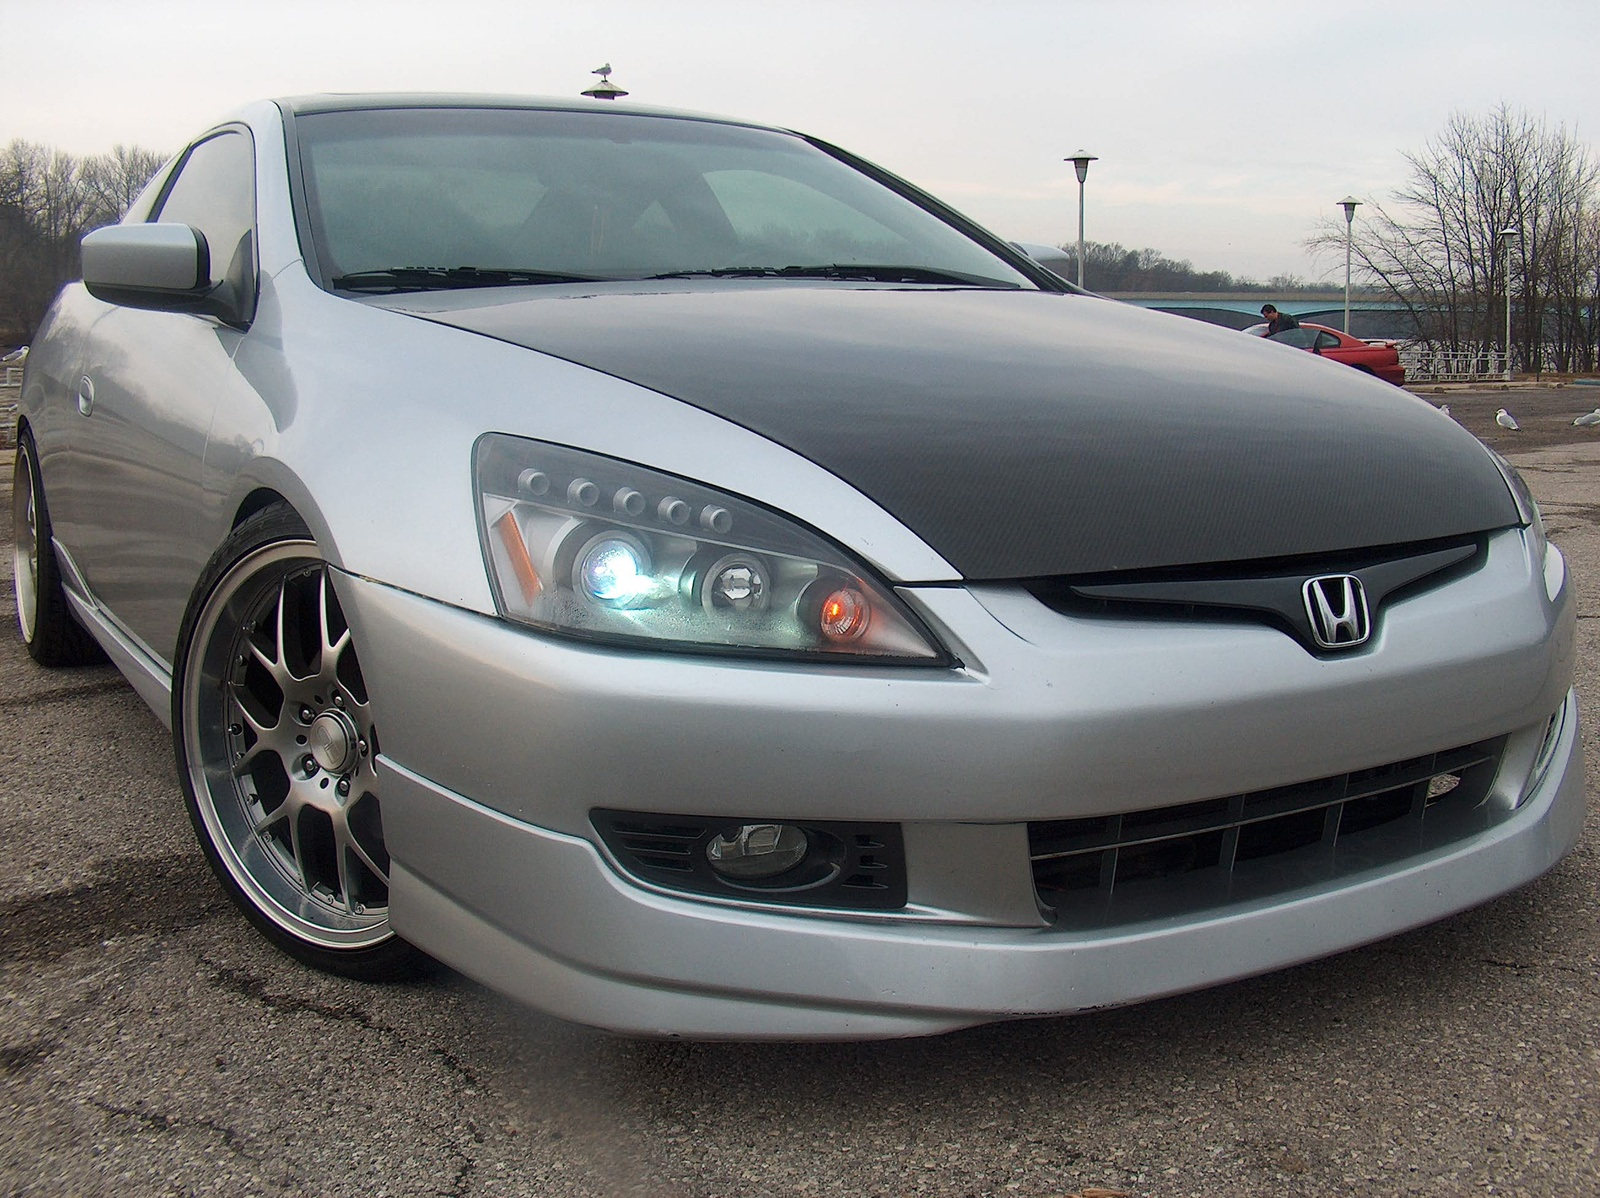 2003 honda accord ex v6 manual for sale rastaload. Black Bedroom Furniture Sets. Home Design Ideas